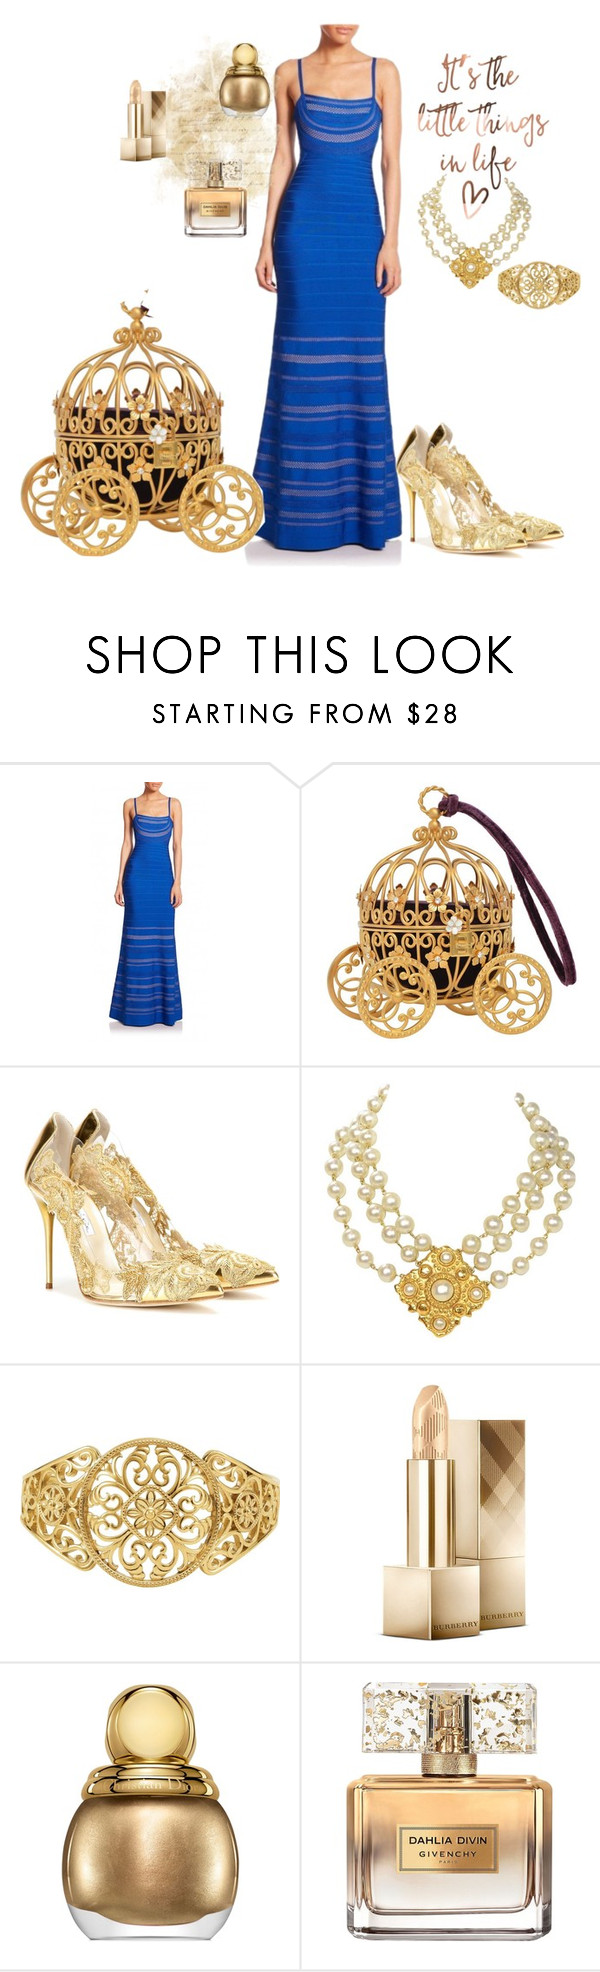 """Posh Girl Formal"" by poshgirlus ❤ liked on Polyvore featuring Posh Girl, Oscar de la Renta, Chanel, Burberry, Christian Dior and Givenchy"